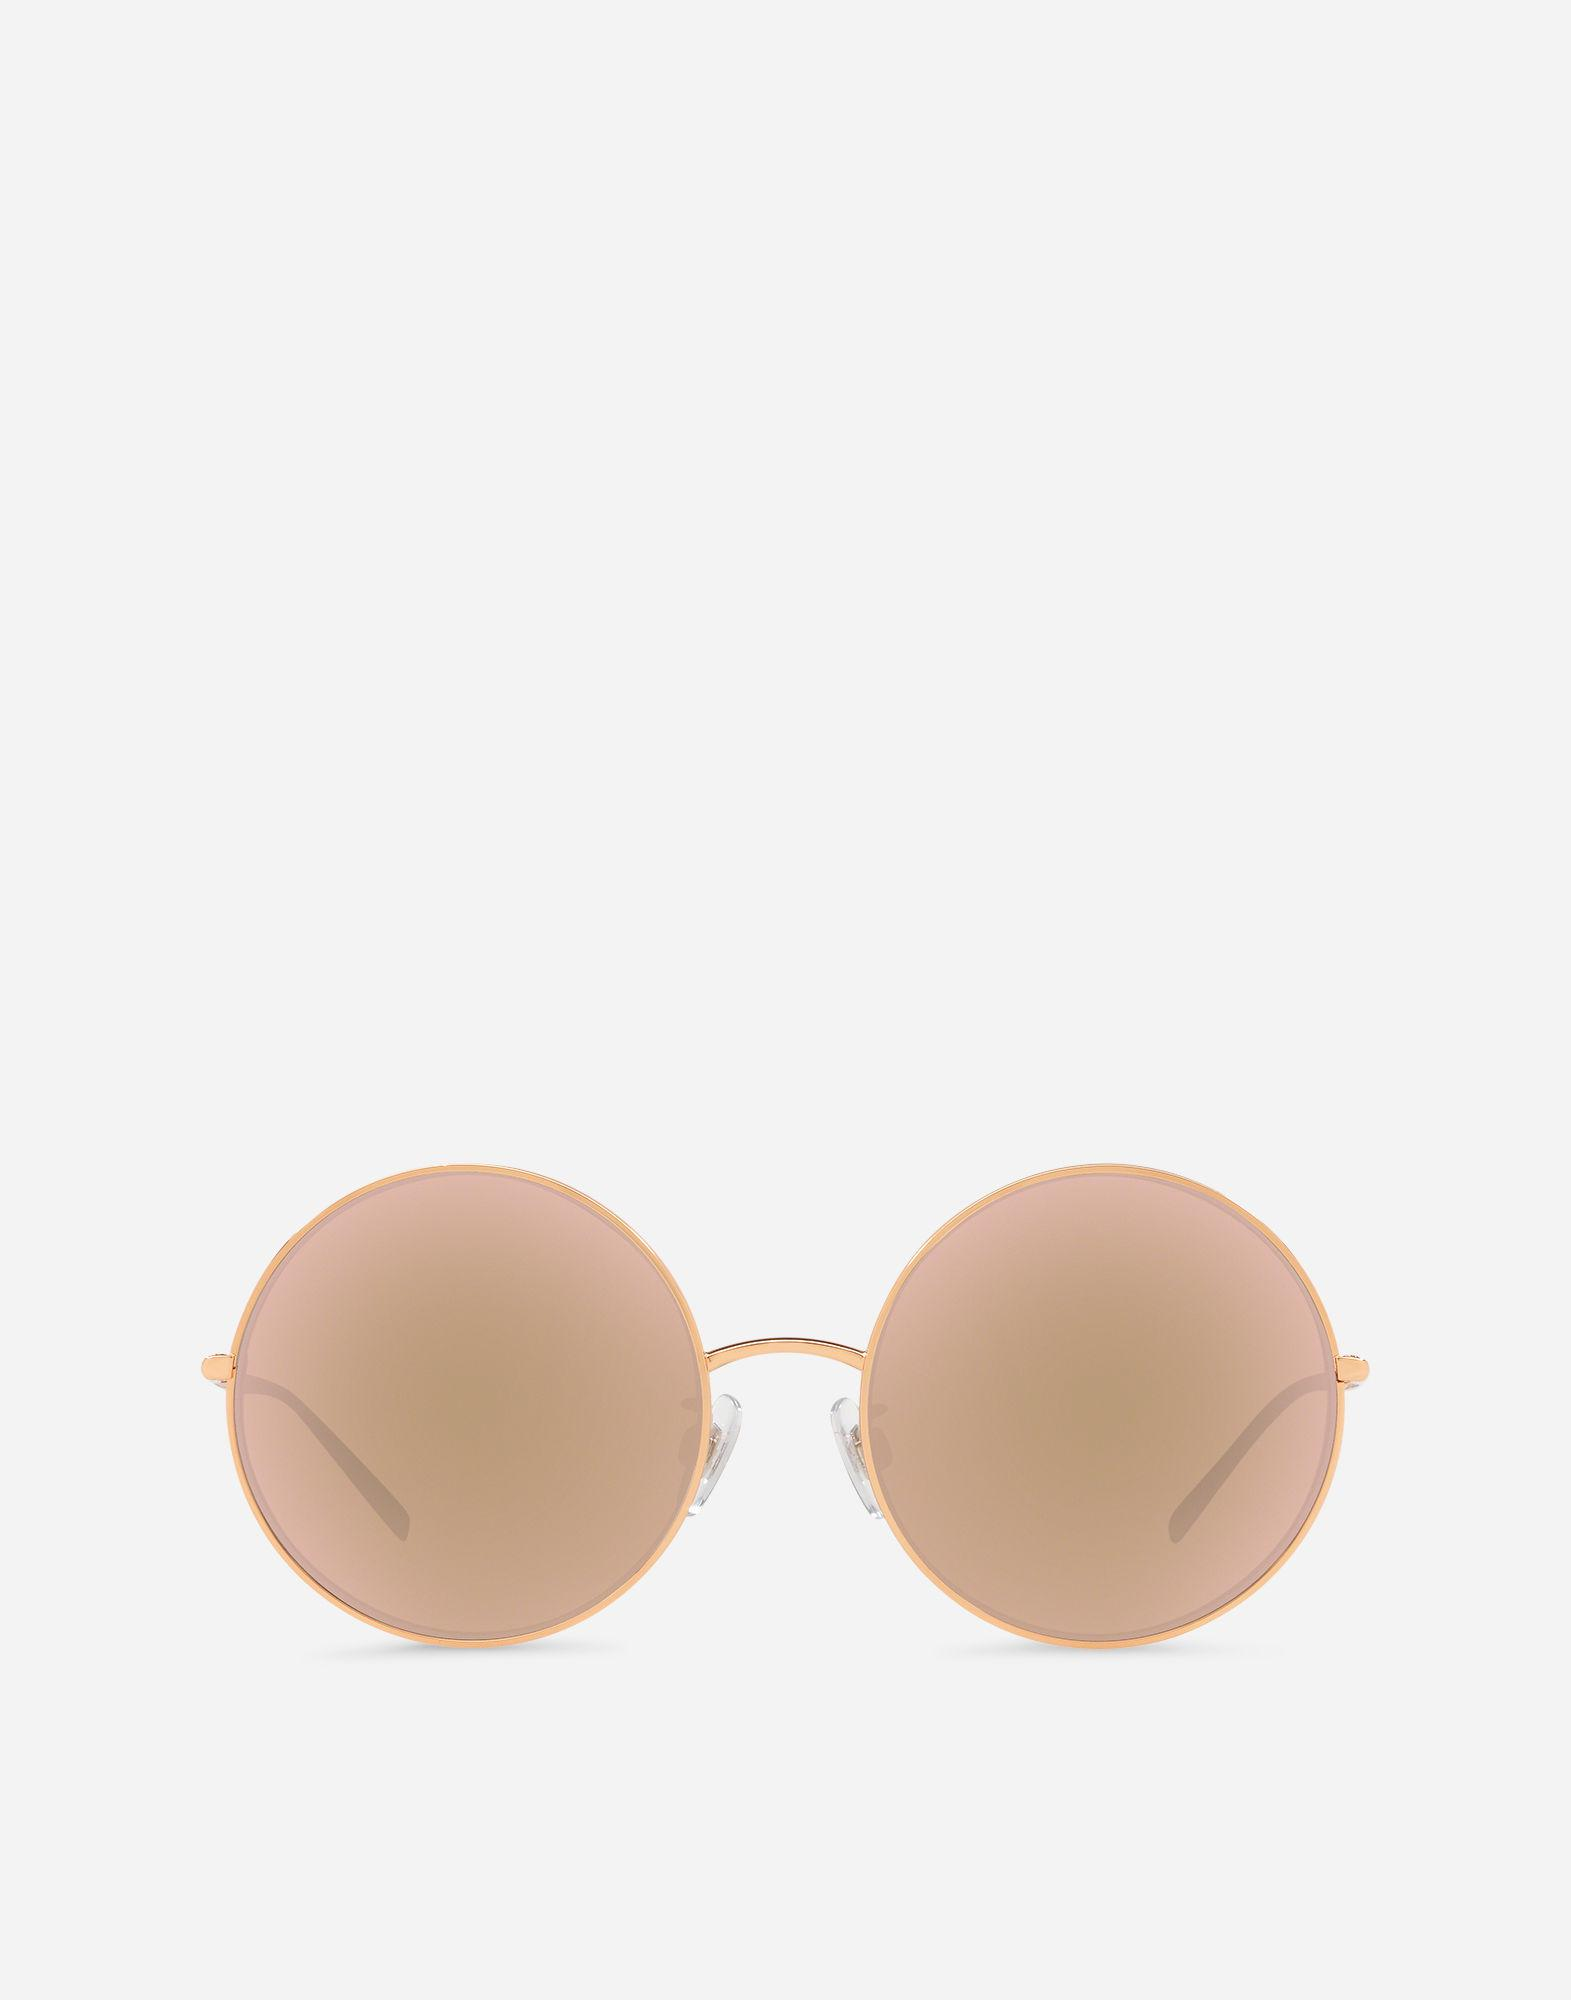 e59d8ec3eb74 Lyst - Dolce   Gabbana Round Gold Plated Sunglasses in Pink